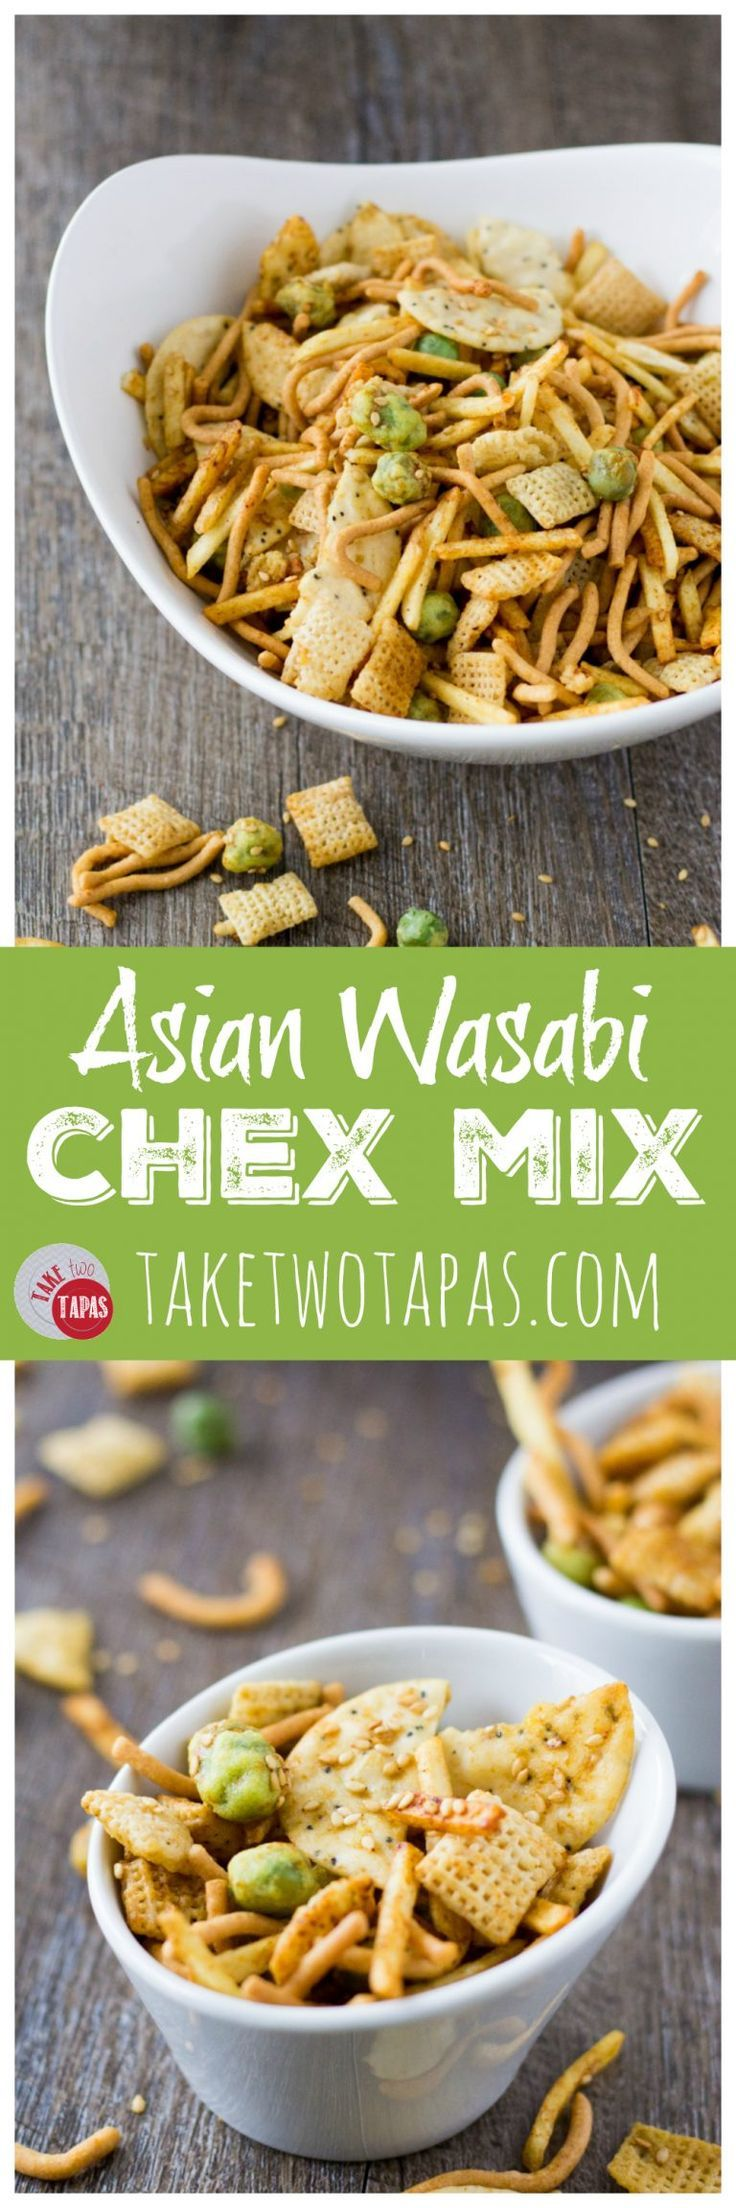 Snack mix takes a trip around the globe and lands in Asian! My Asian Wasabi Chex Mix is loaded with sesame seeds, rice crackers, crunchy chow mein noodles, crispy wasabi peas, and coated with a soy wasabi sauce! Get ready to be addicted to the Far East! A